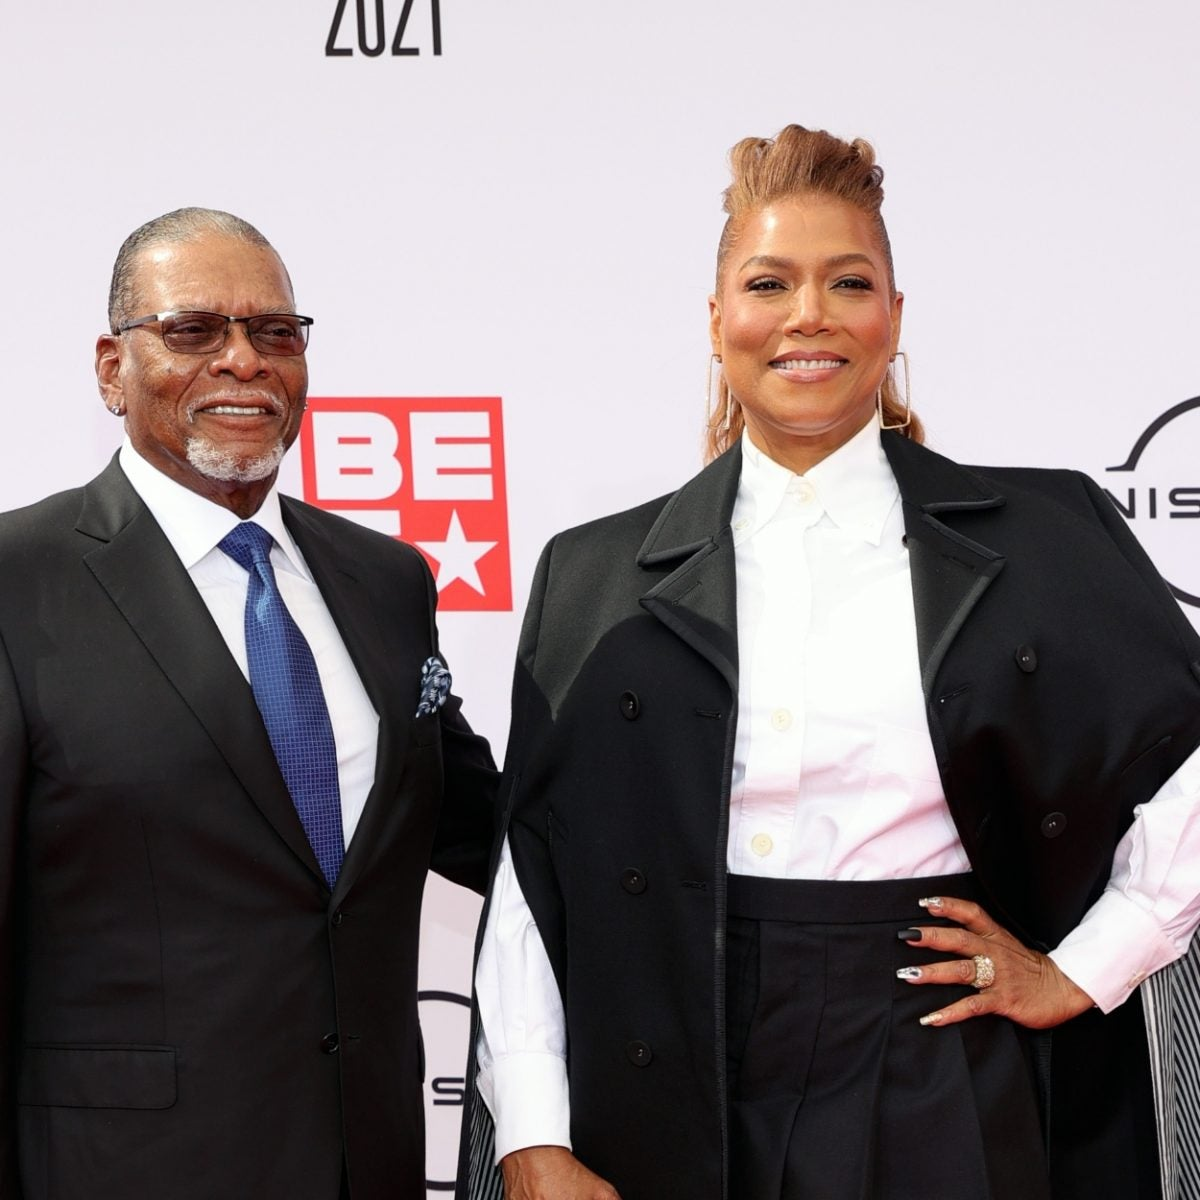 These Stars Made The 2021 BET Awards A Family Affair